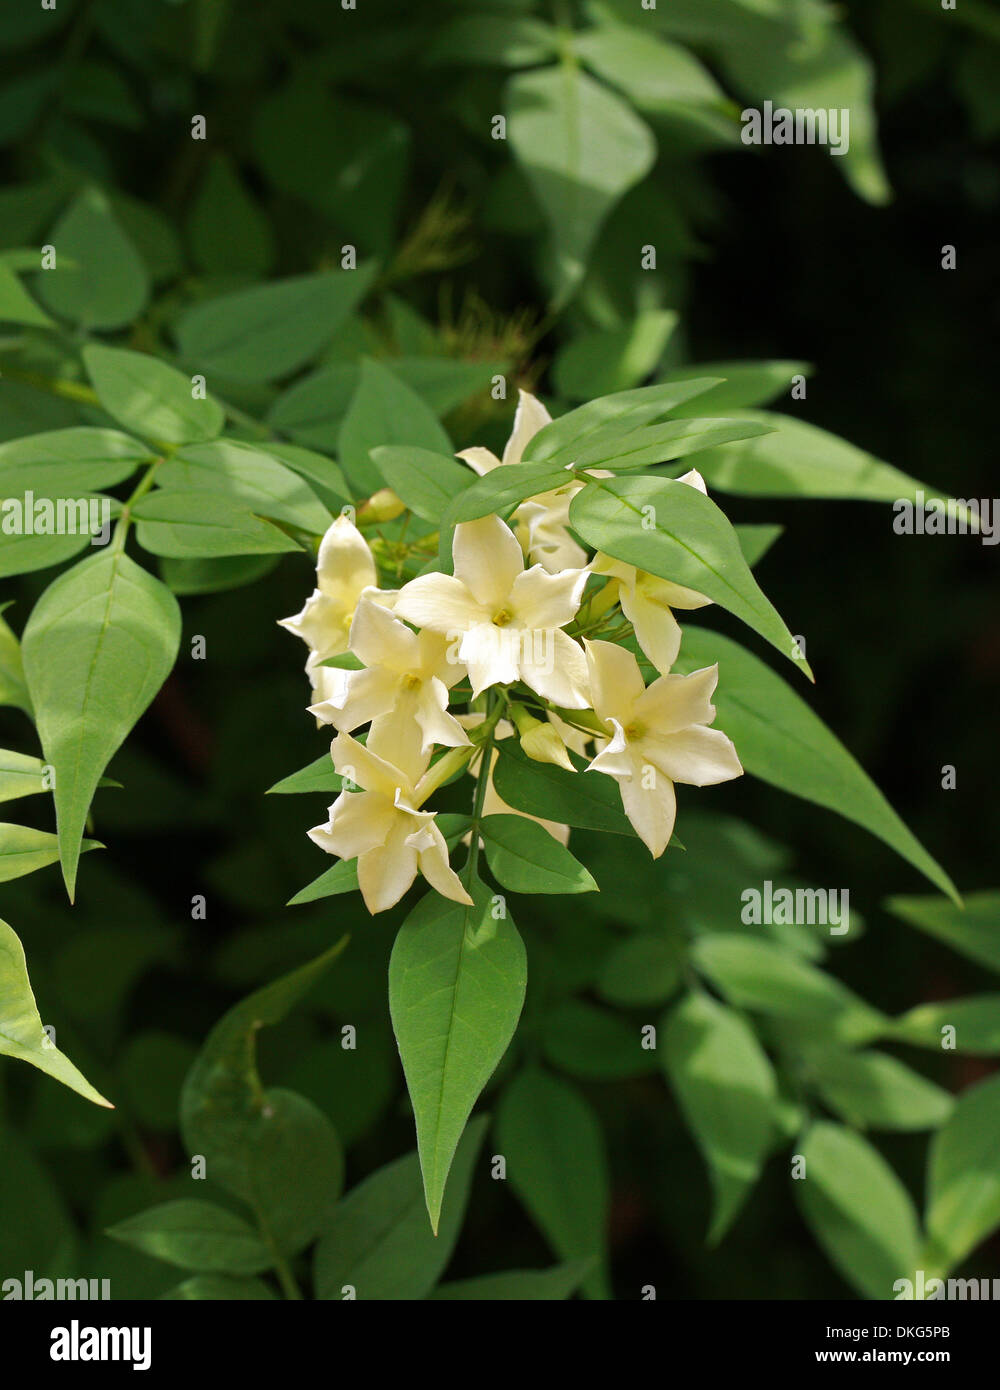 "Jasmine or Jessamine, Poet's Jasmine, Jasminum officinale ""Clotted Cream"", Oleaceae. Syn. Jasminum grandiflorum. Stock Photo"